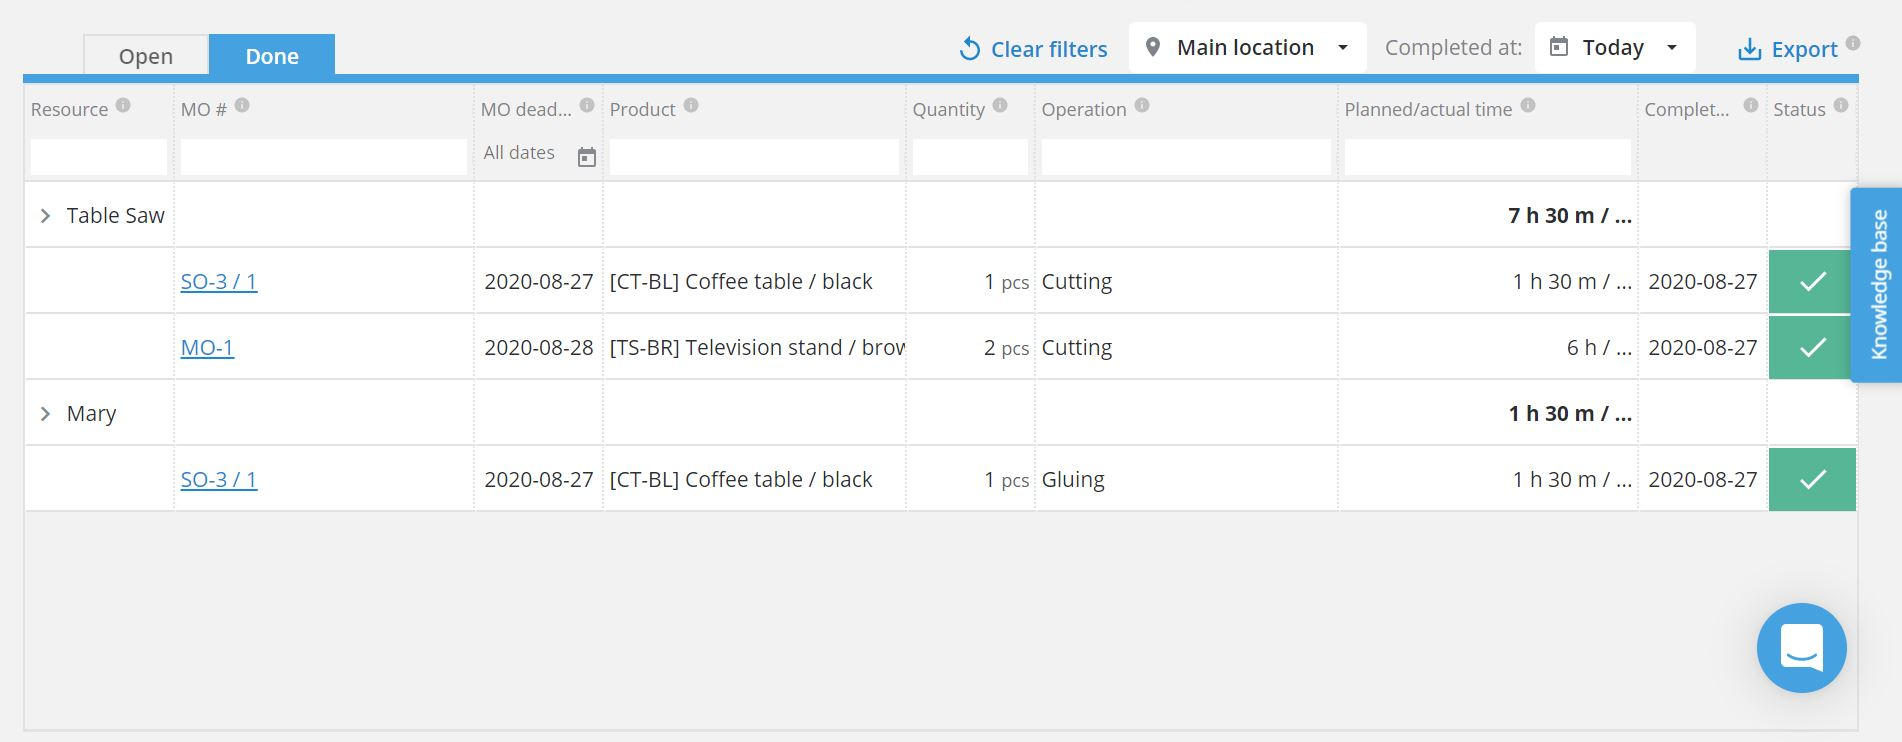 See and Make Changes to Completed Tasks in Any Given Period